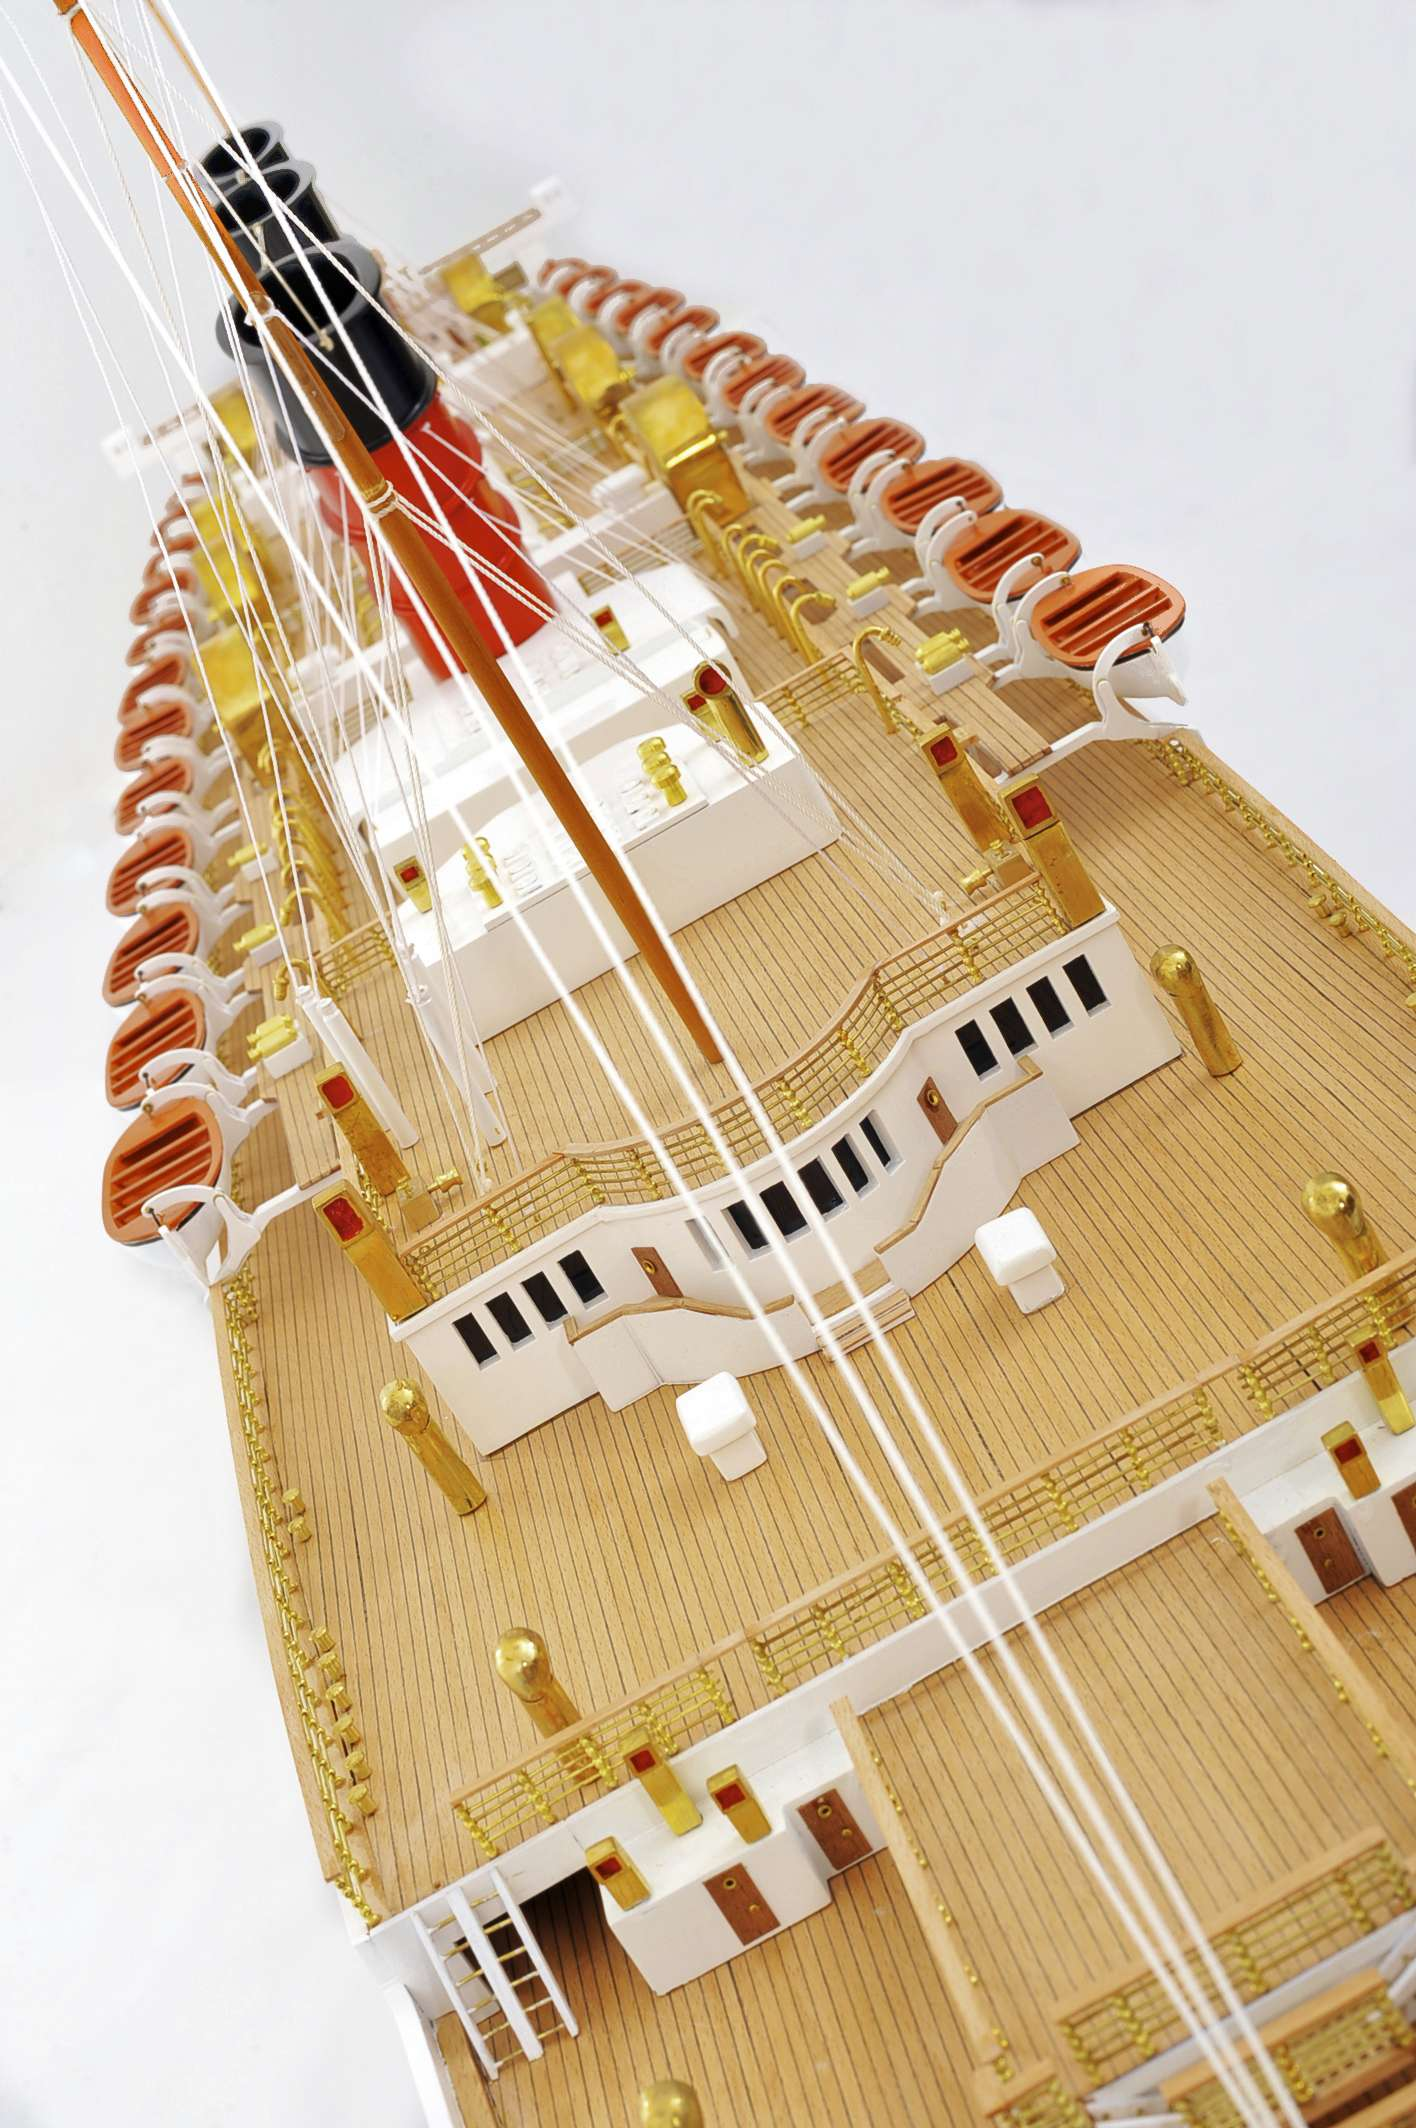 1484-4985-RMS-Queen-Mary-Model